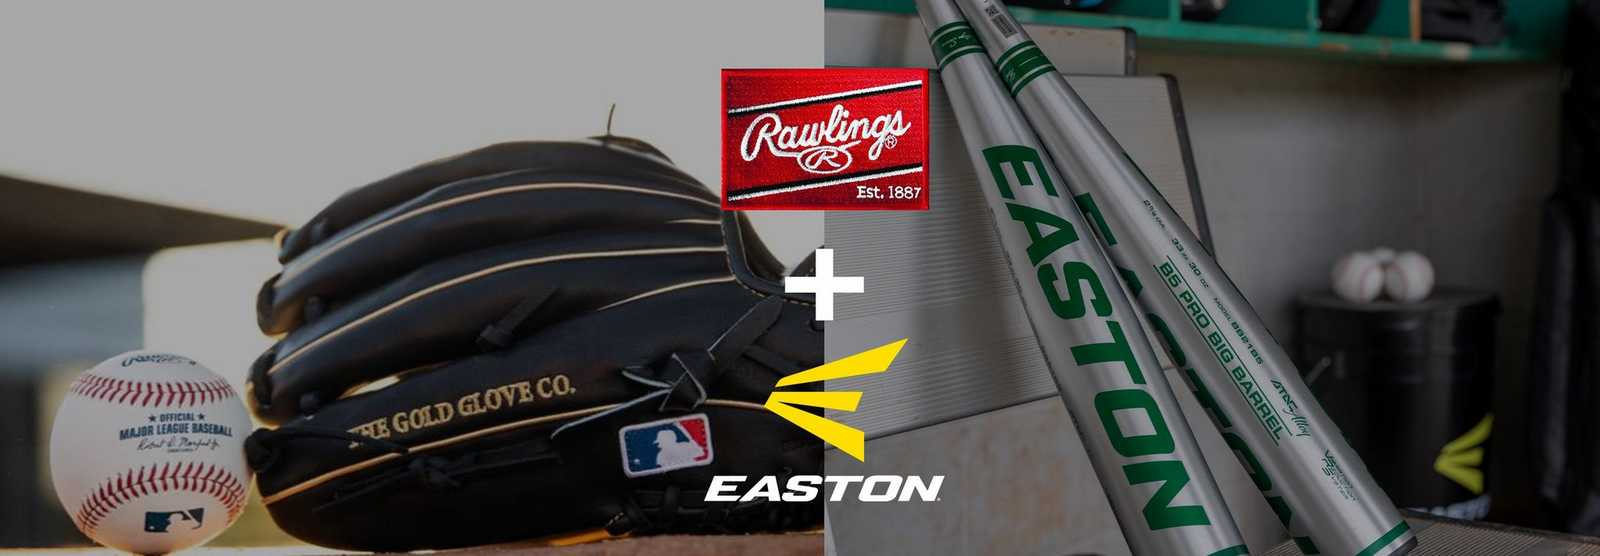 rawlings-easton-acquisition